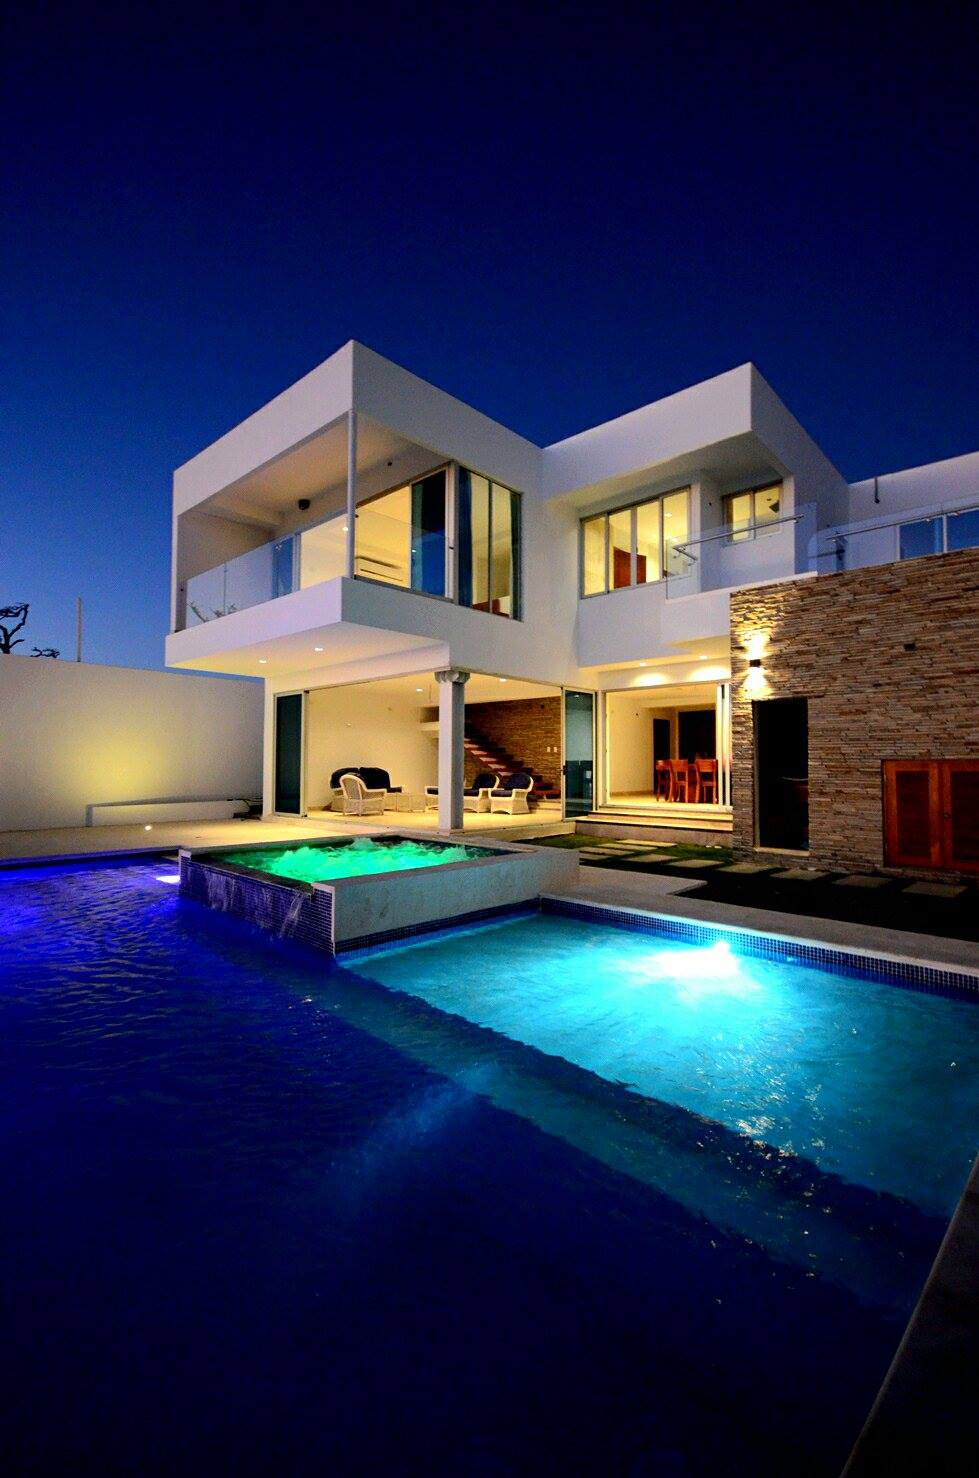 Modern pool, beautiful view, exterior design, architect work, Pacific Penthouse Residence